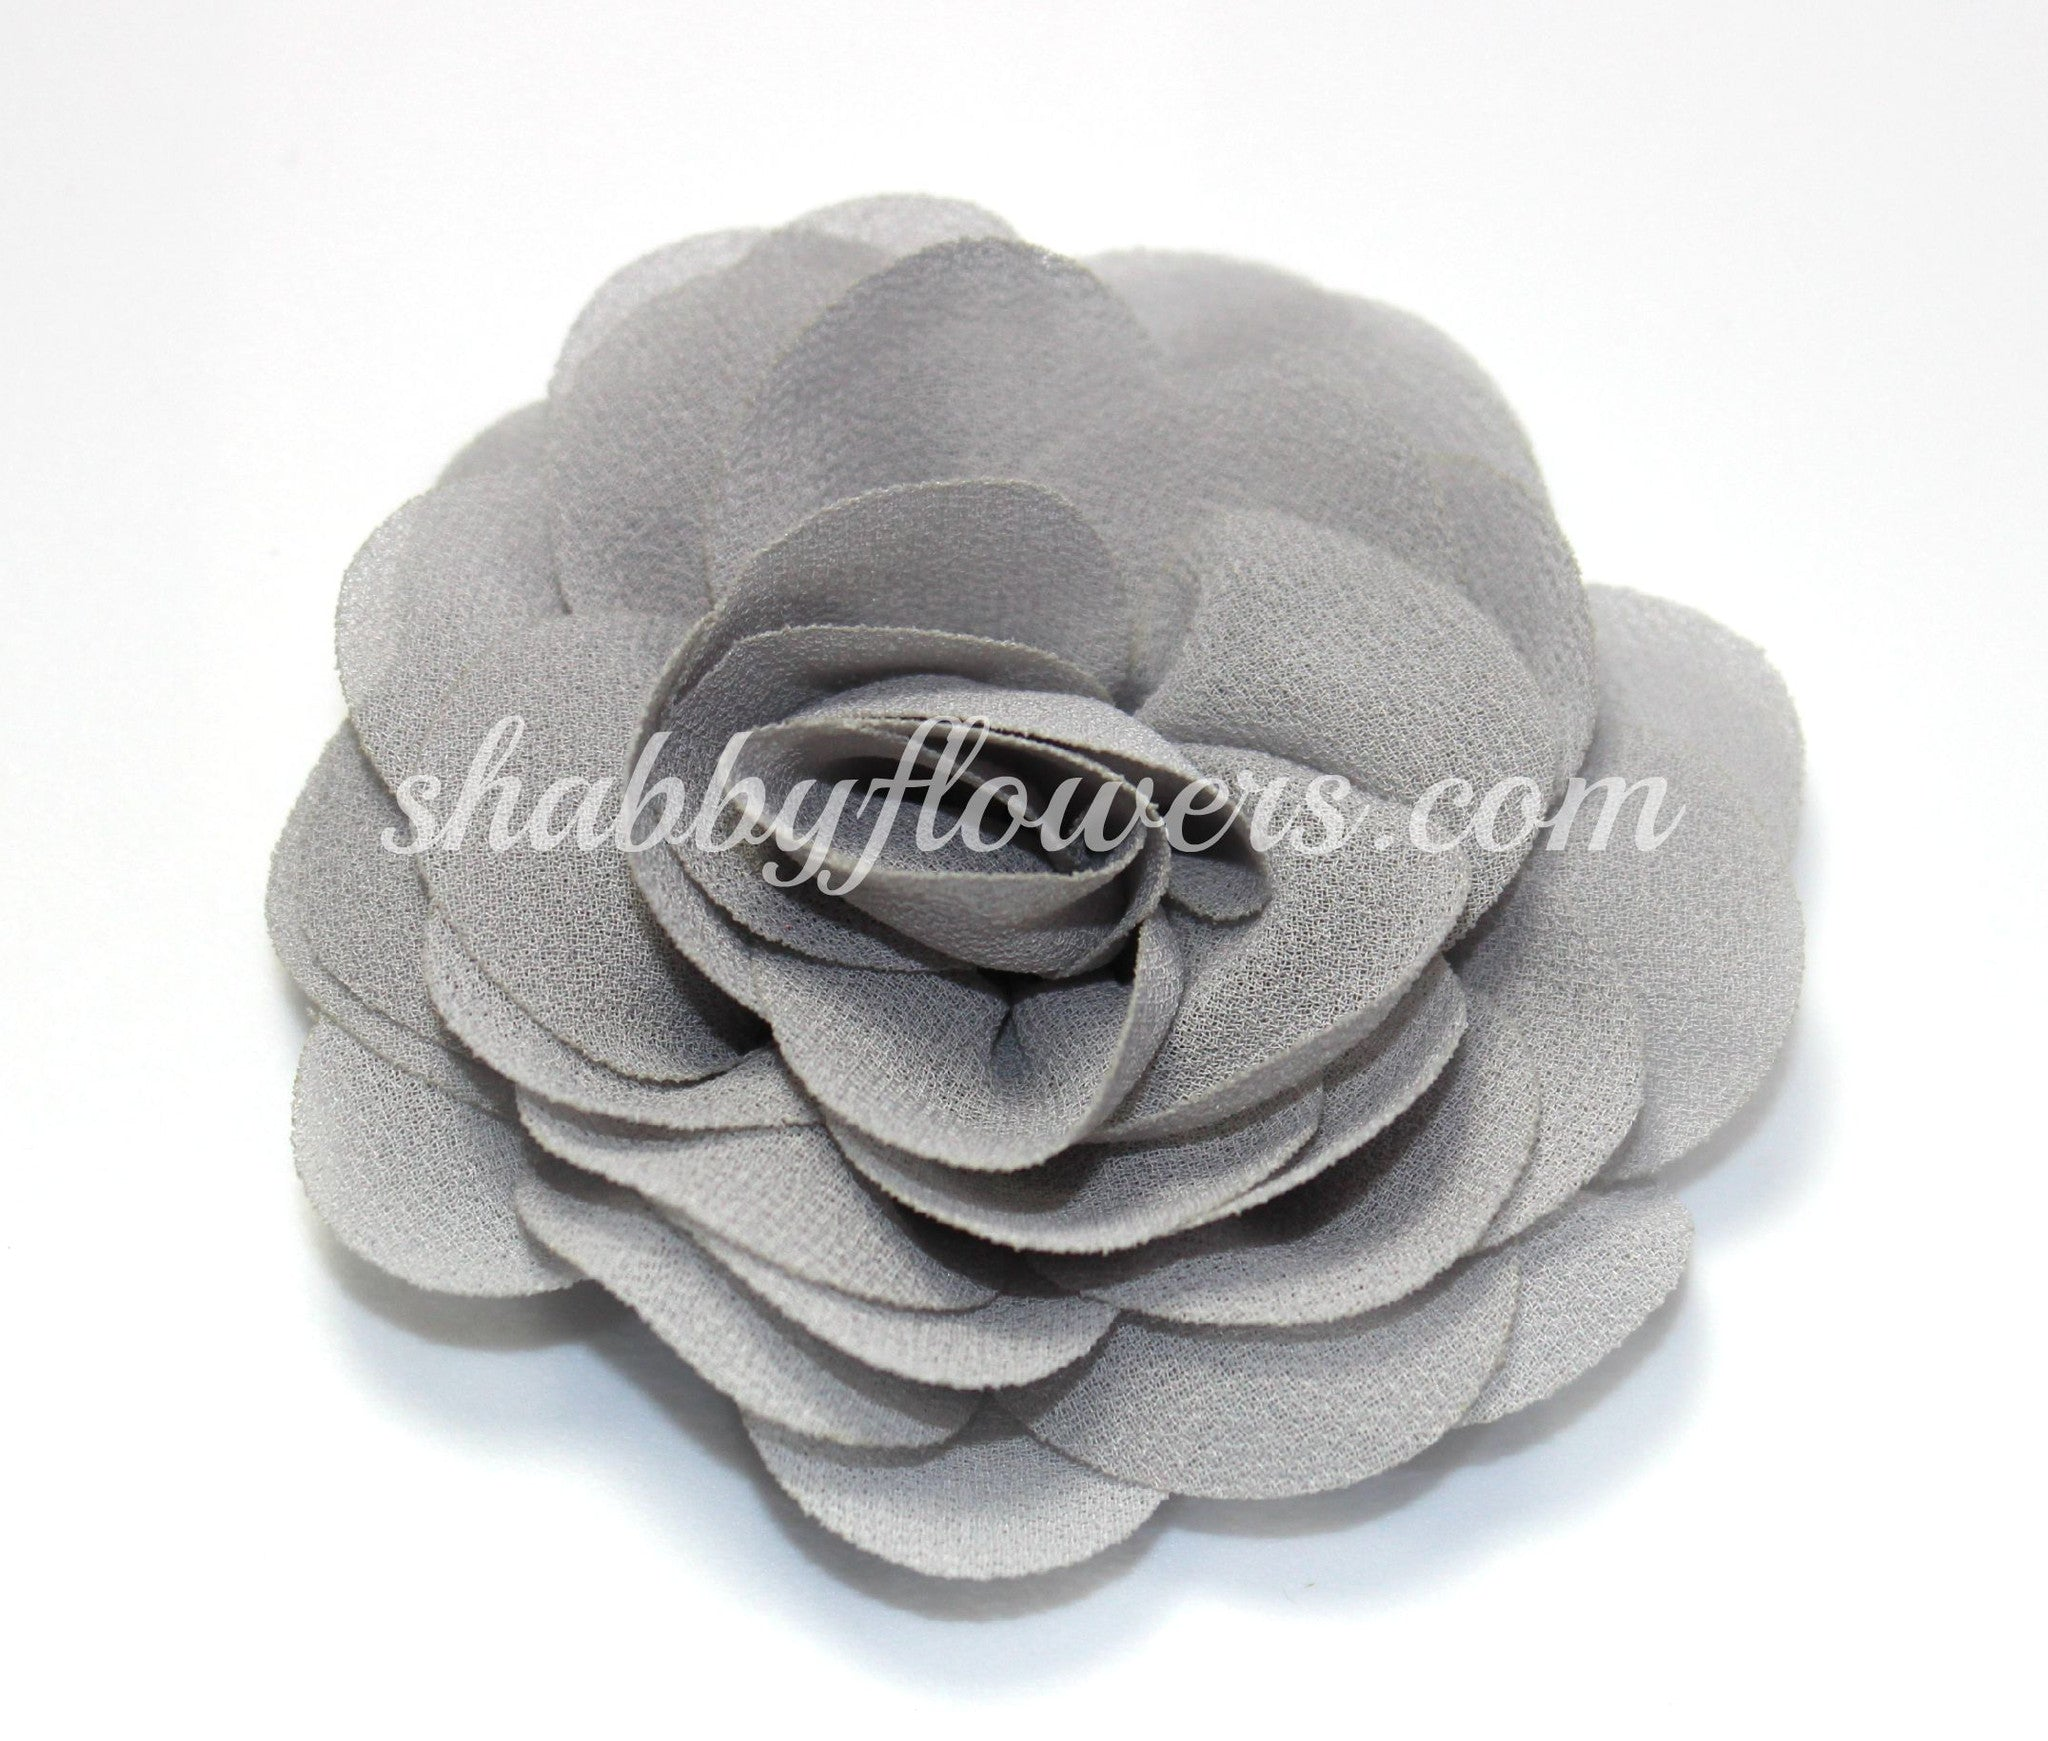 Rose - Silver - shabbyflowers.com